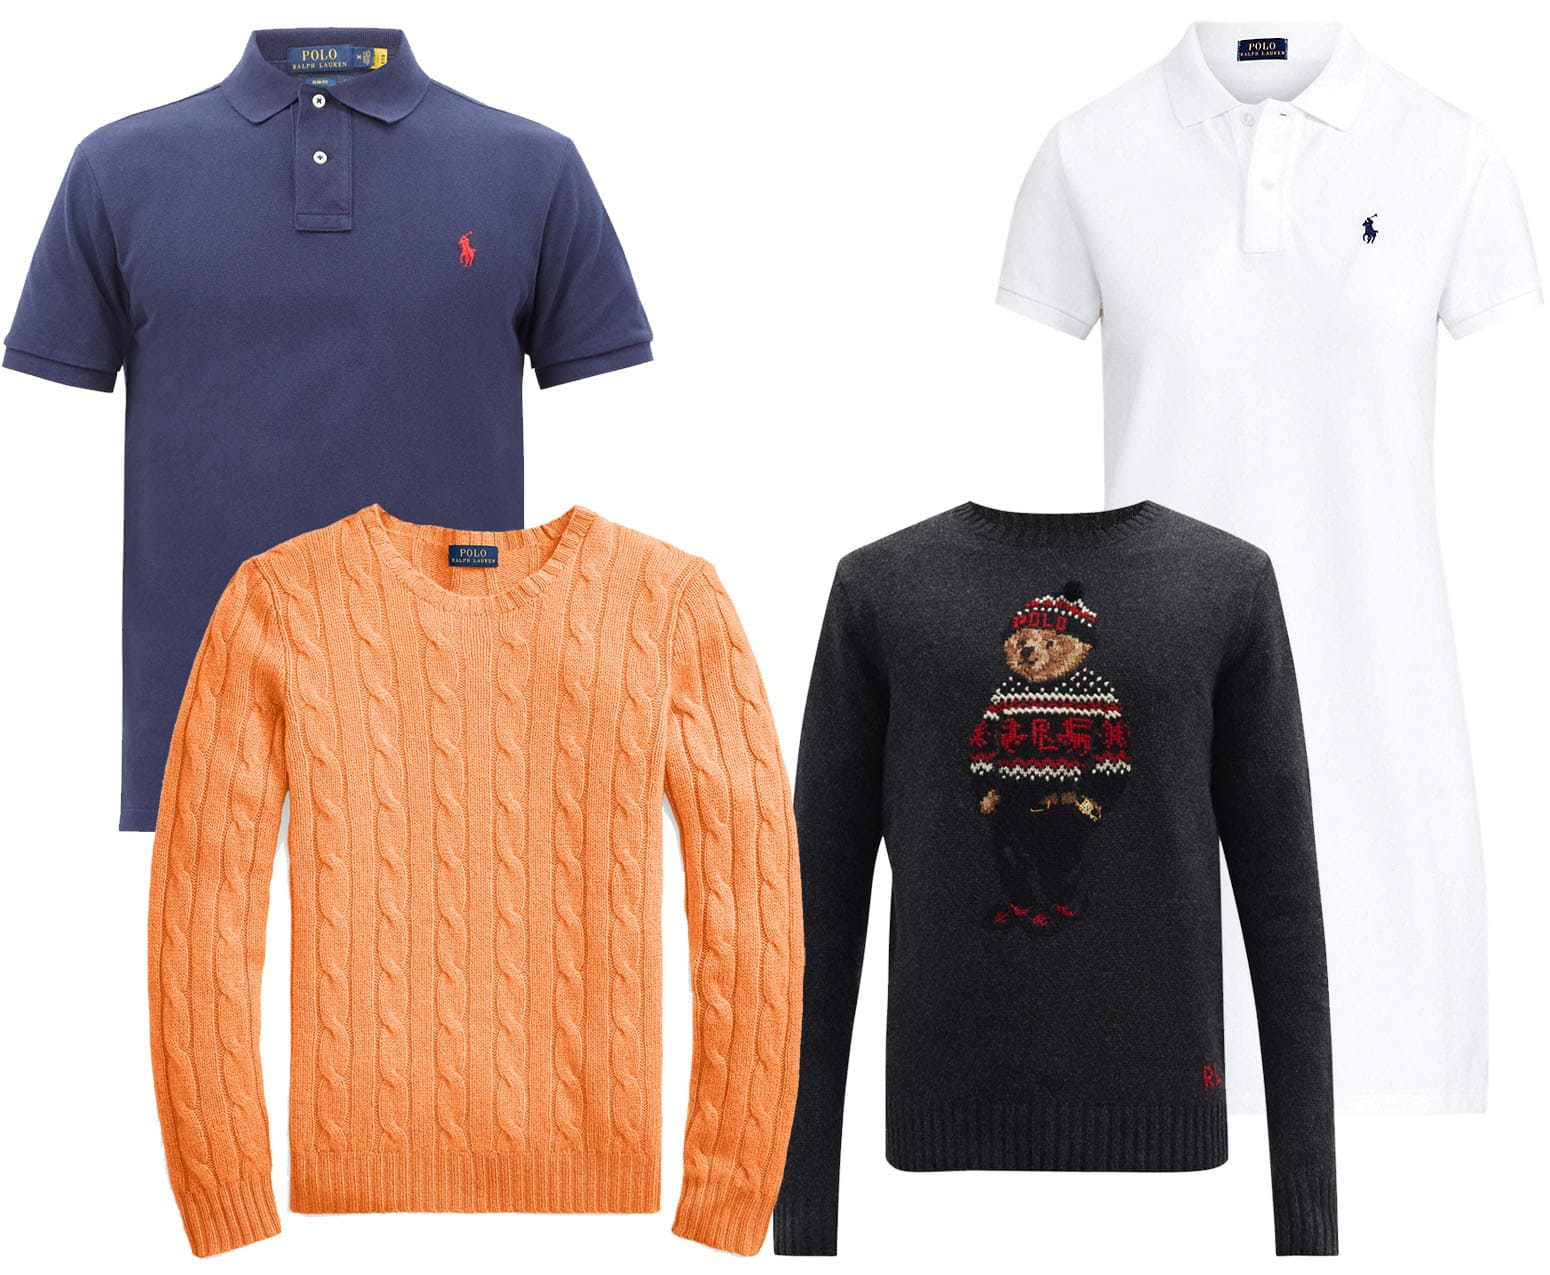 Ralph Lauren's must-haves include the classic polo shirt and polo dress, the brand's cable-knit cashmere sweater, and Polo bear jumper